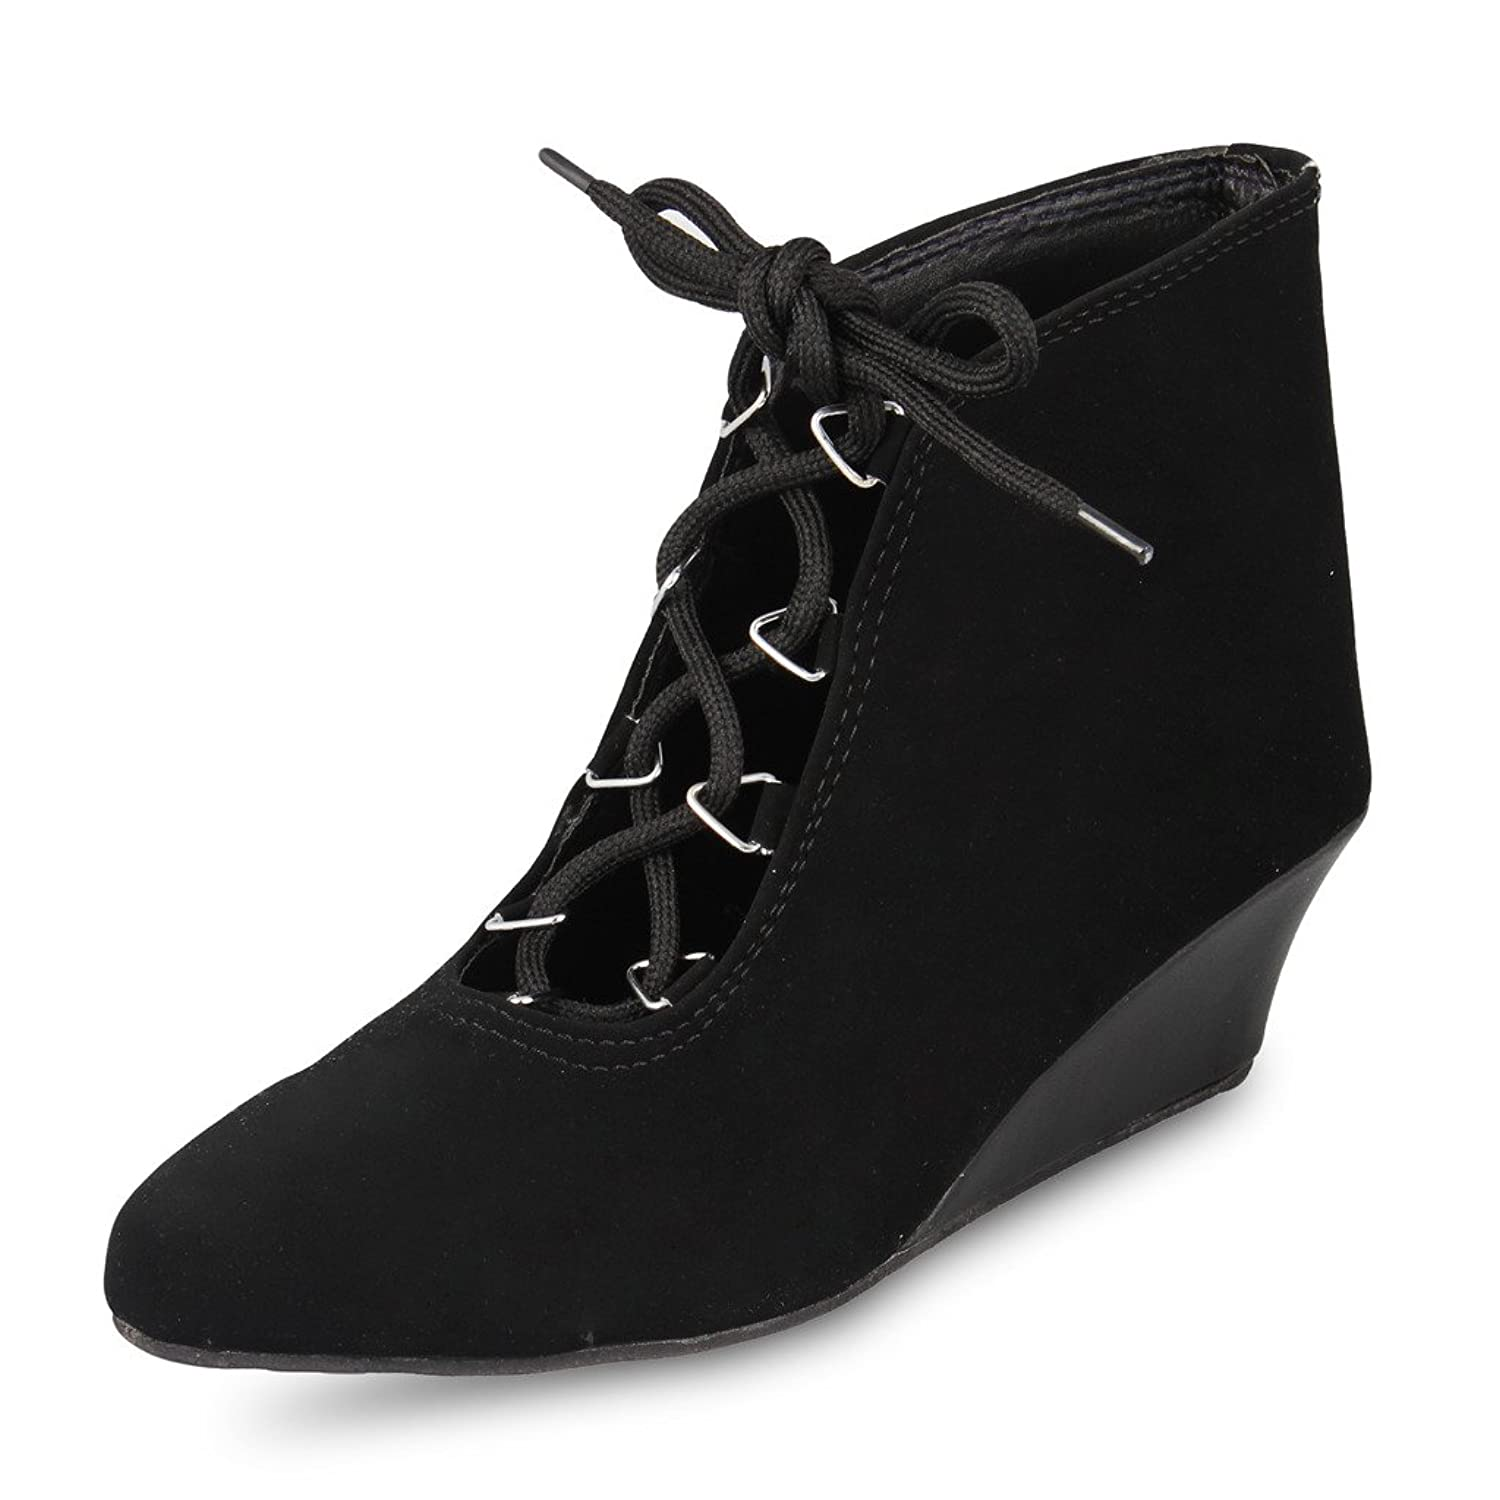 Boots for Women: Buy Boots for Women Online at Best Prices in